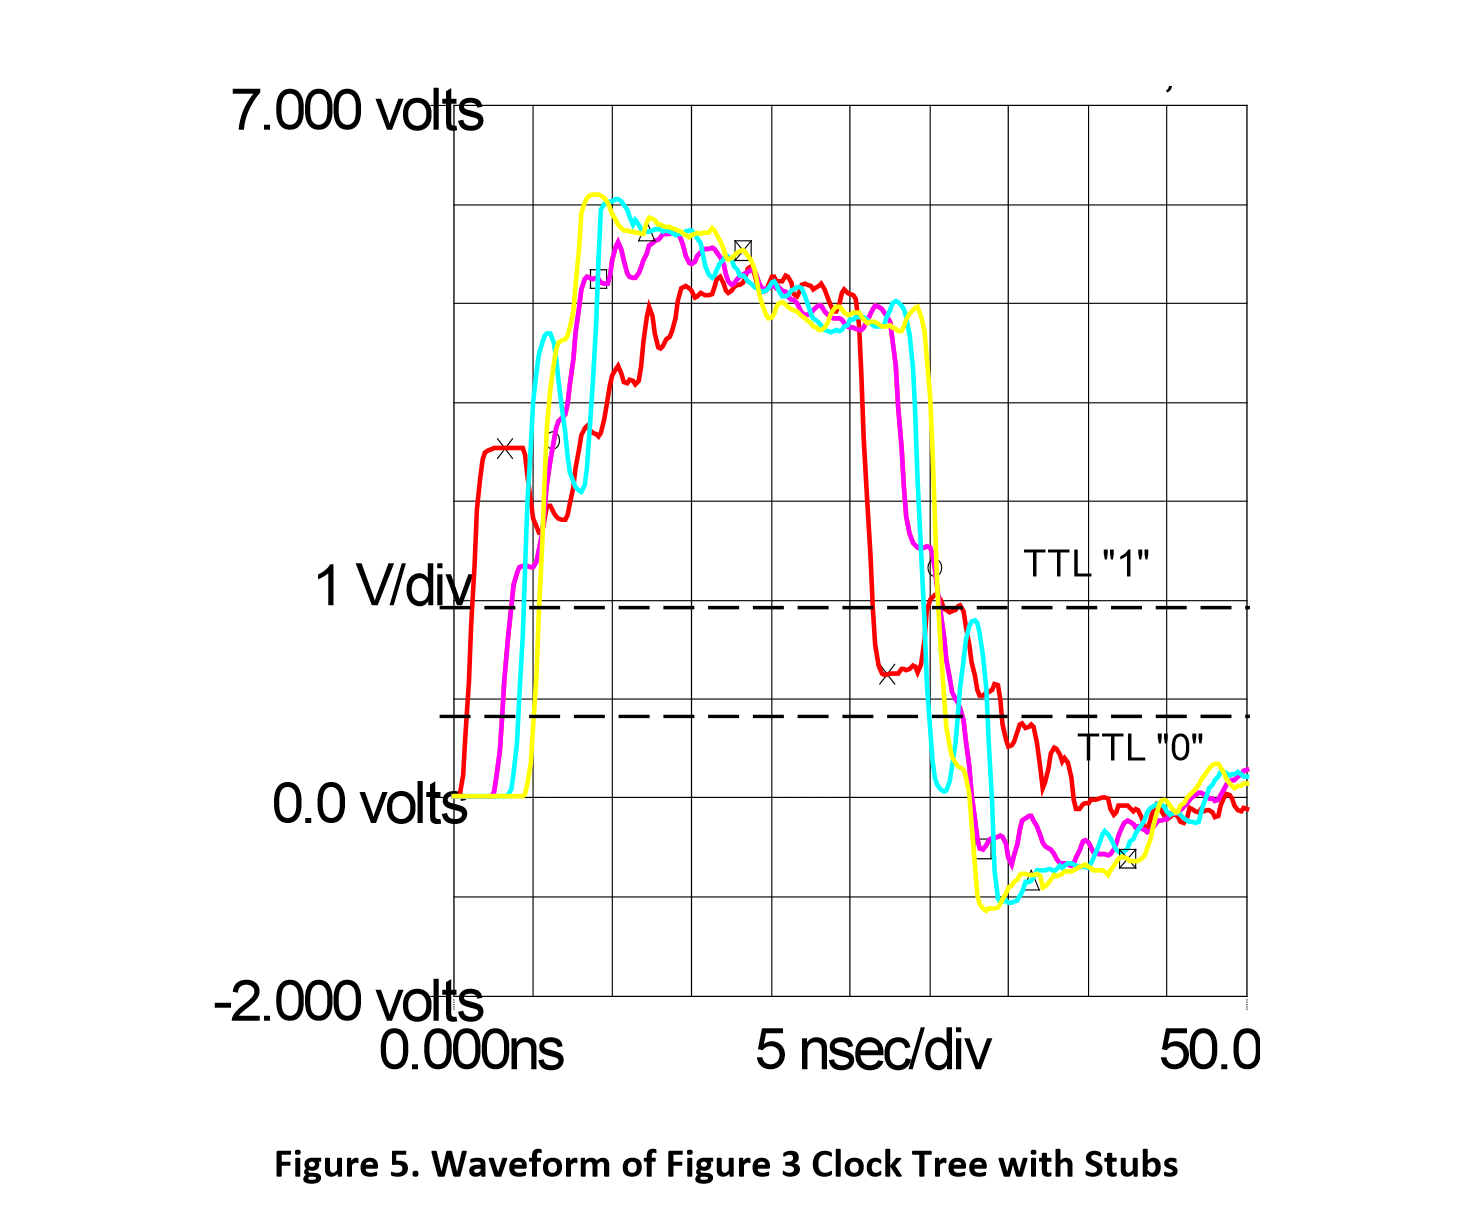 Waveform of Figure 3 Clock Tree with Stubs exhibiting waveform reversal as the blue wave goes back up to 1 after hitting zero